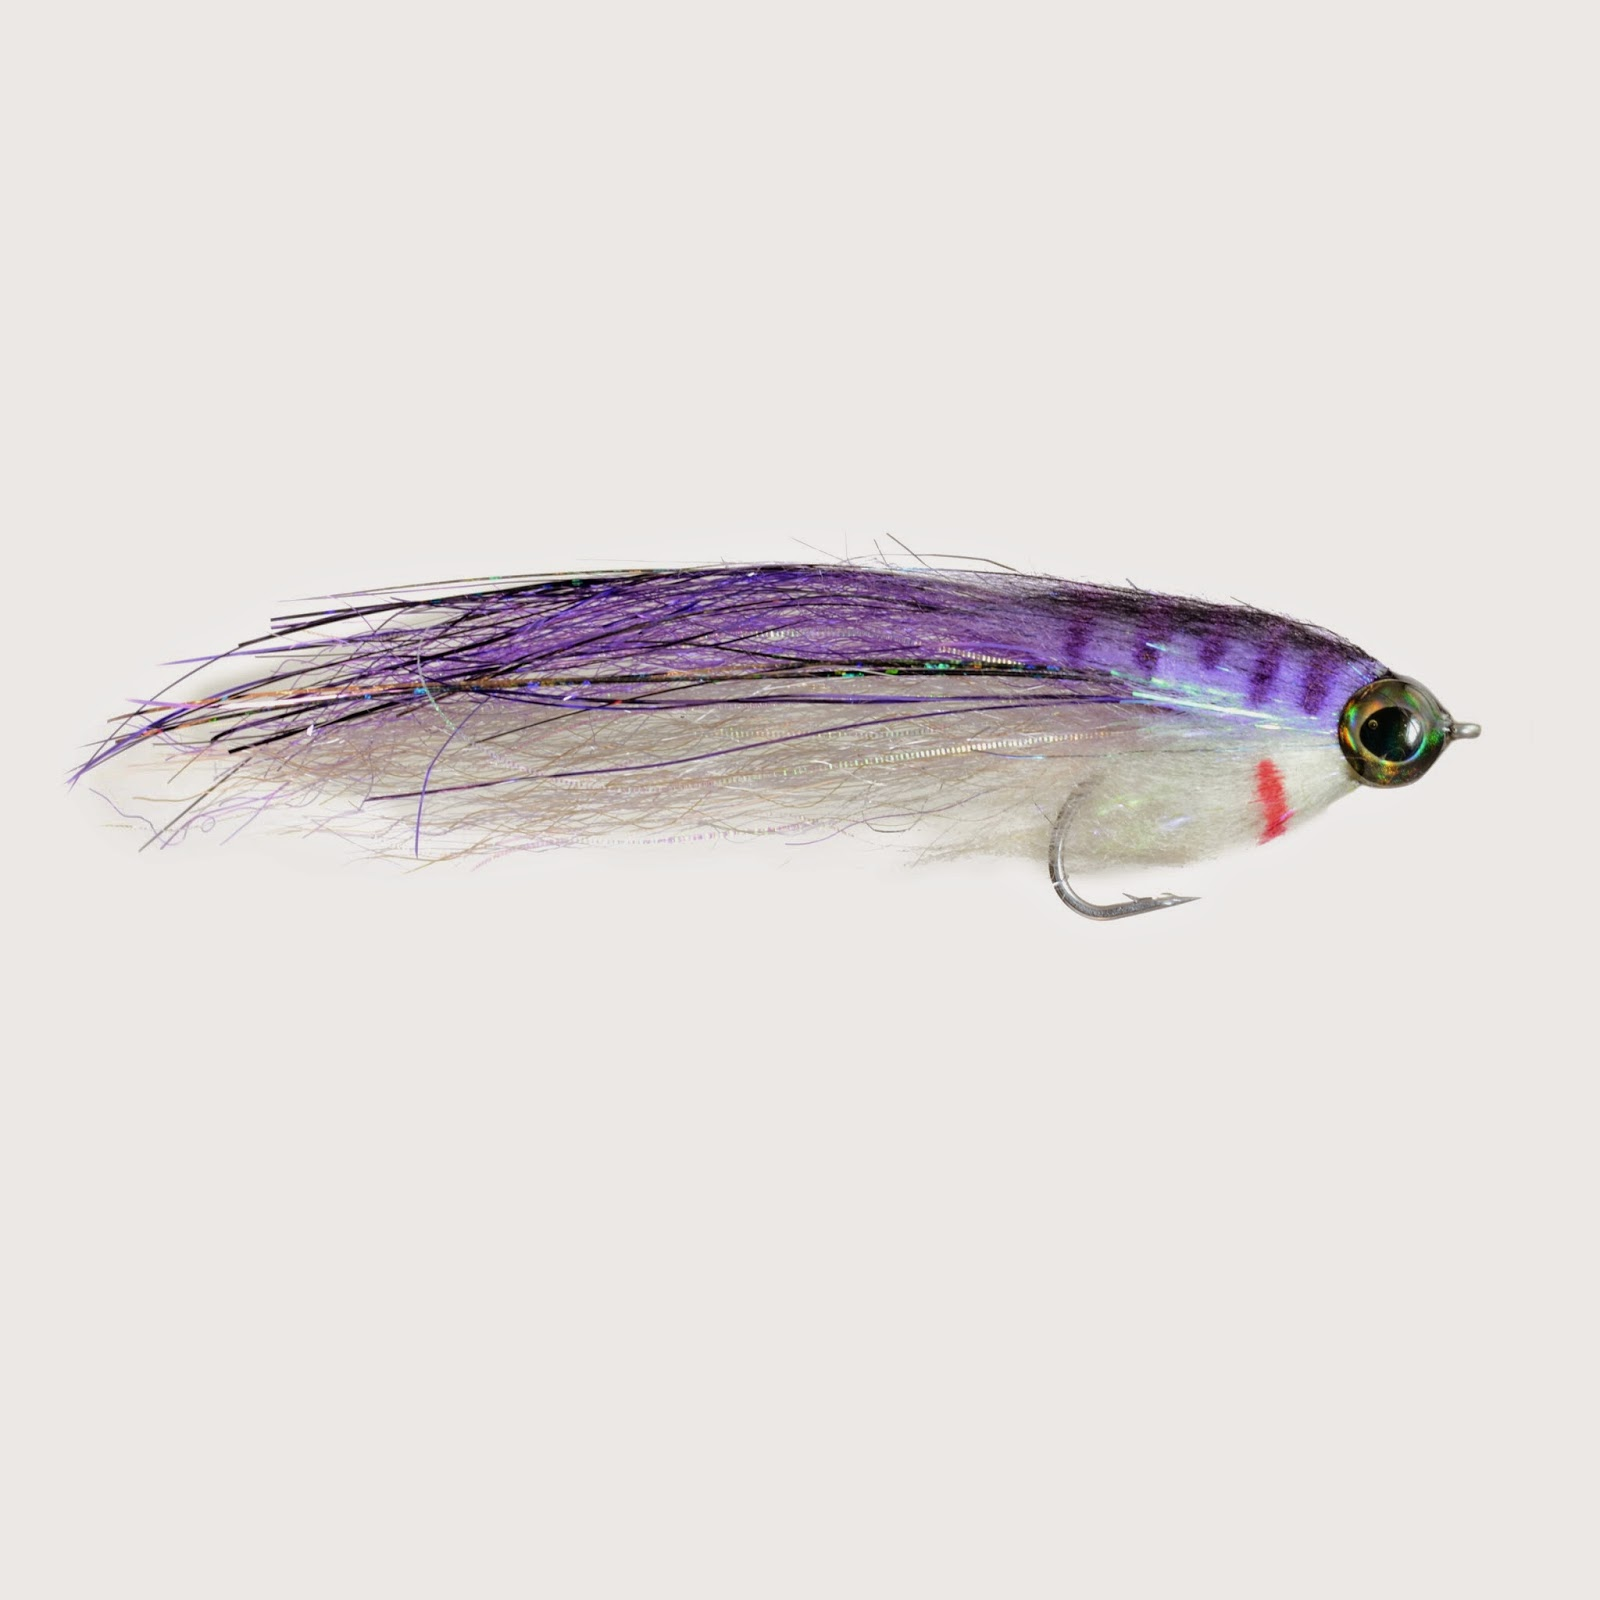 Tacky UV Resins    The End of the World? - Fly Fish Food -- Fly